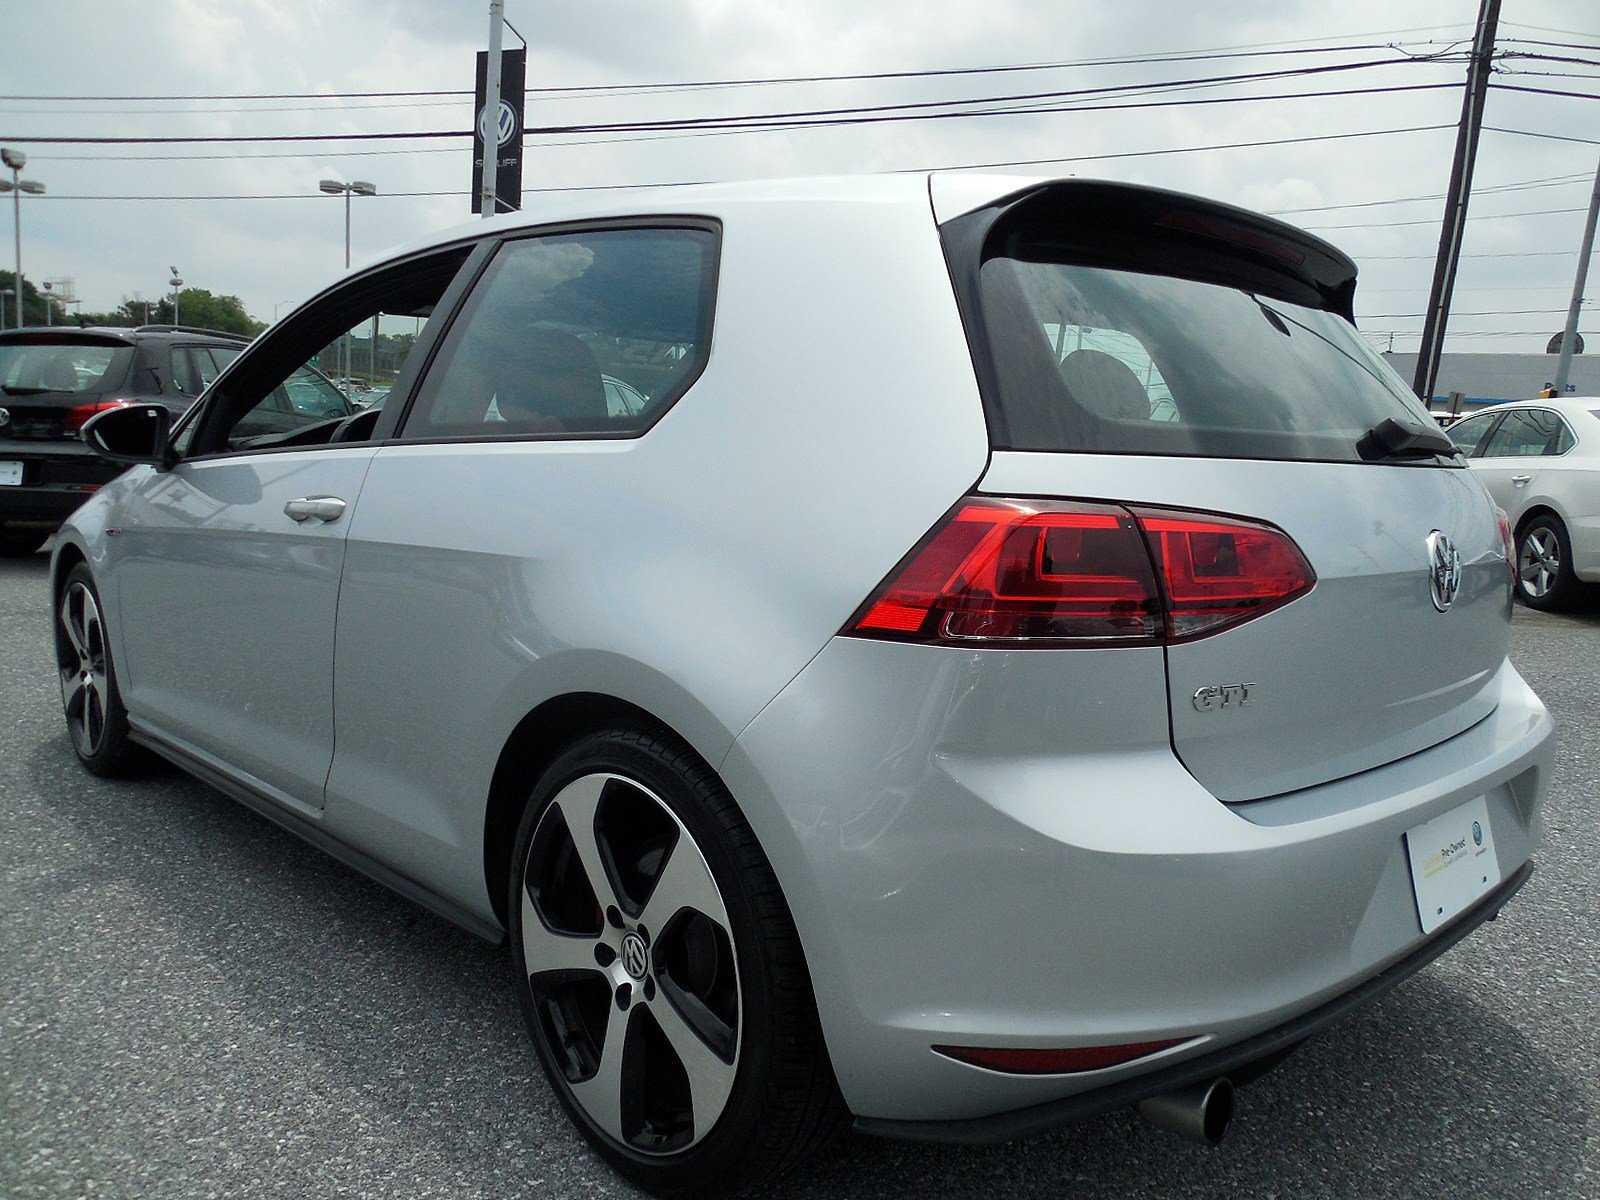 Certified Pre Owned 2015 Volkswagen Golf GTI S Hatchback in